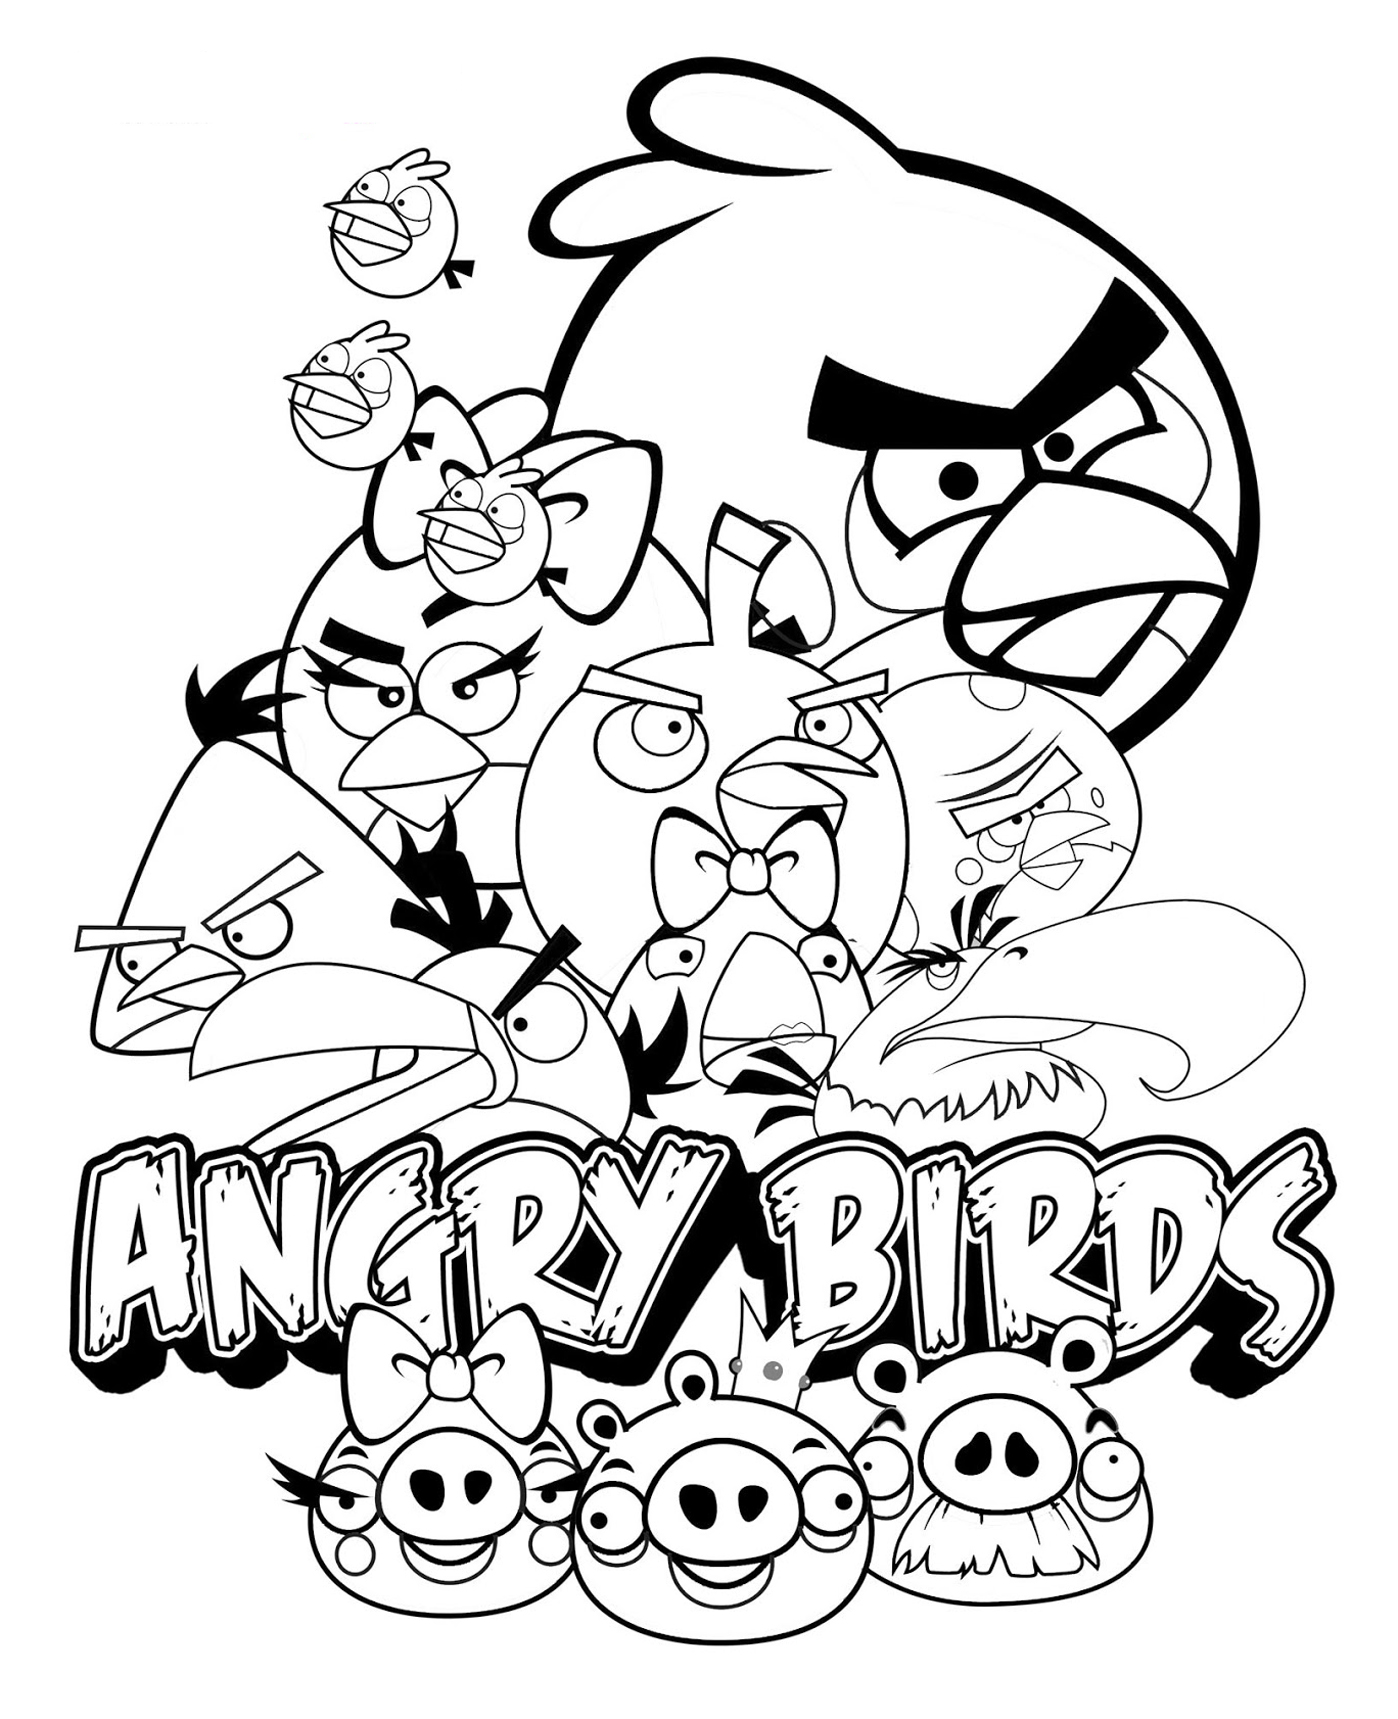 Angry Birds To Download For Free Angry Birds Kids Coloring Pages